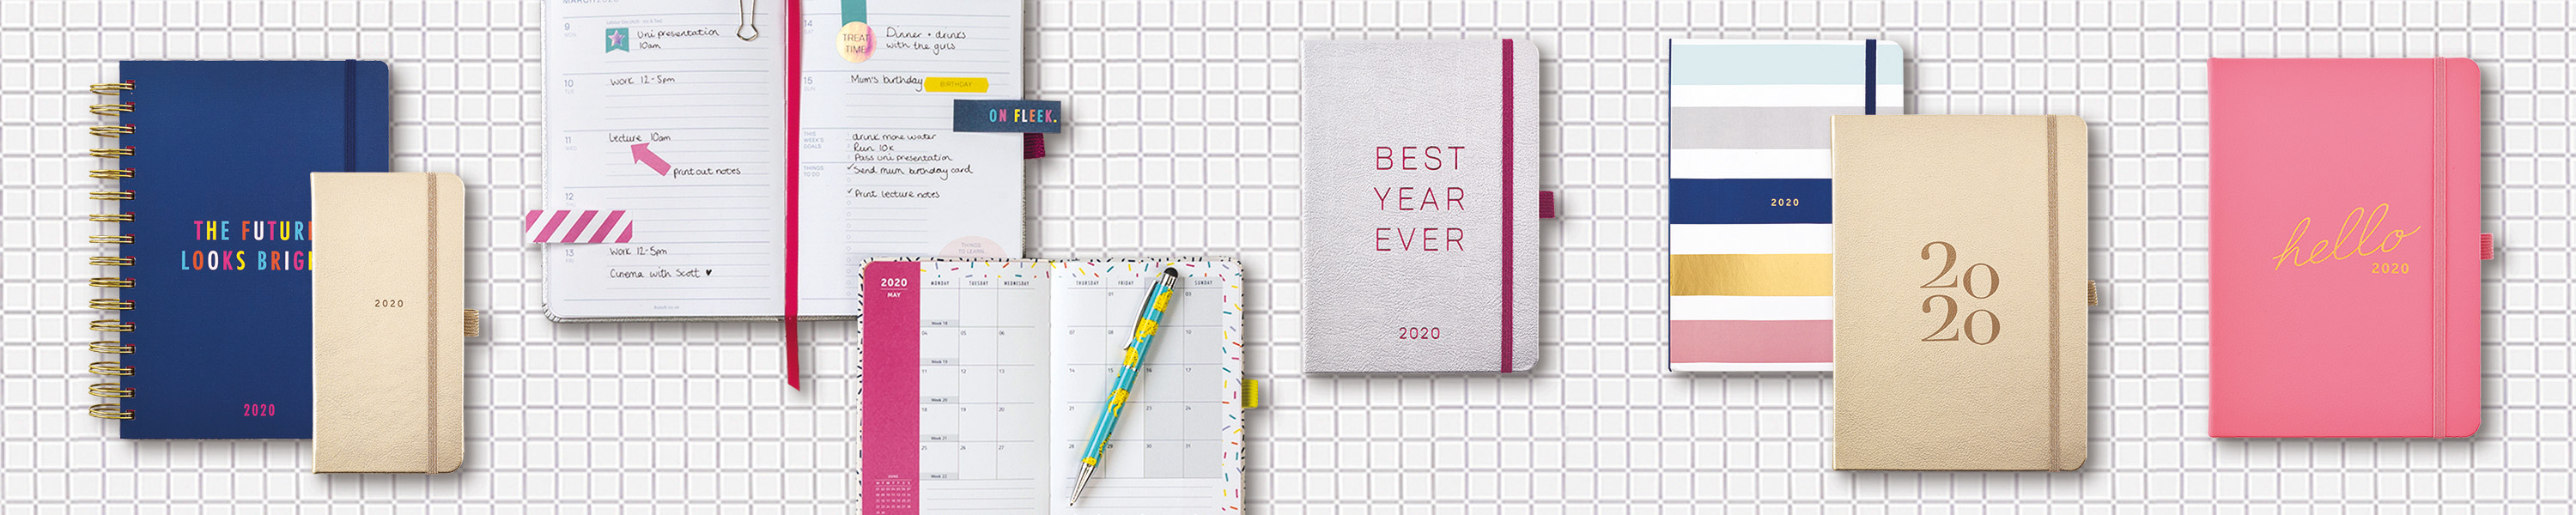 2020 Diaries & Planners Banner Image